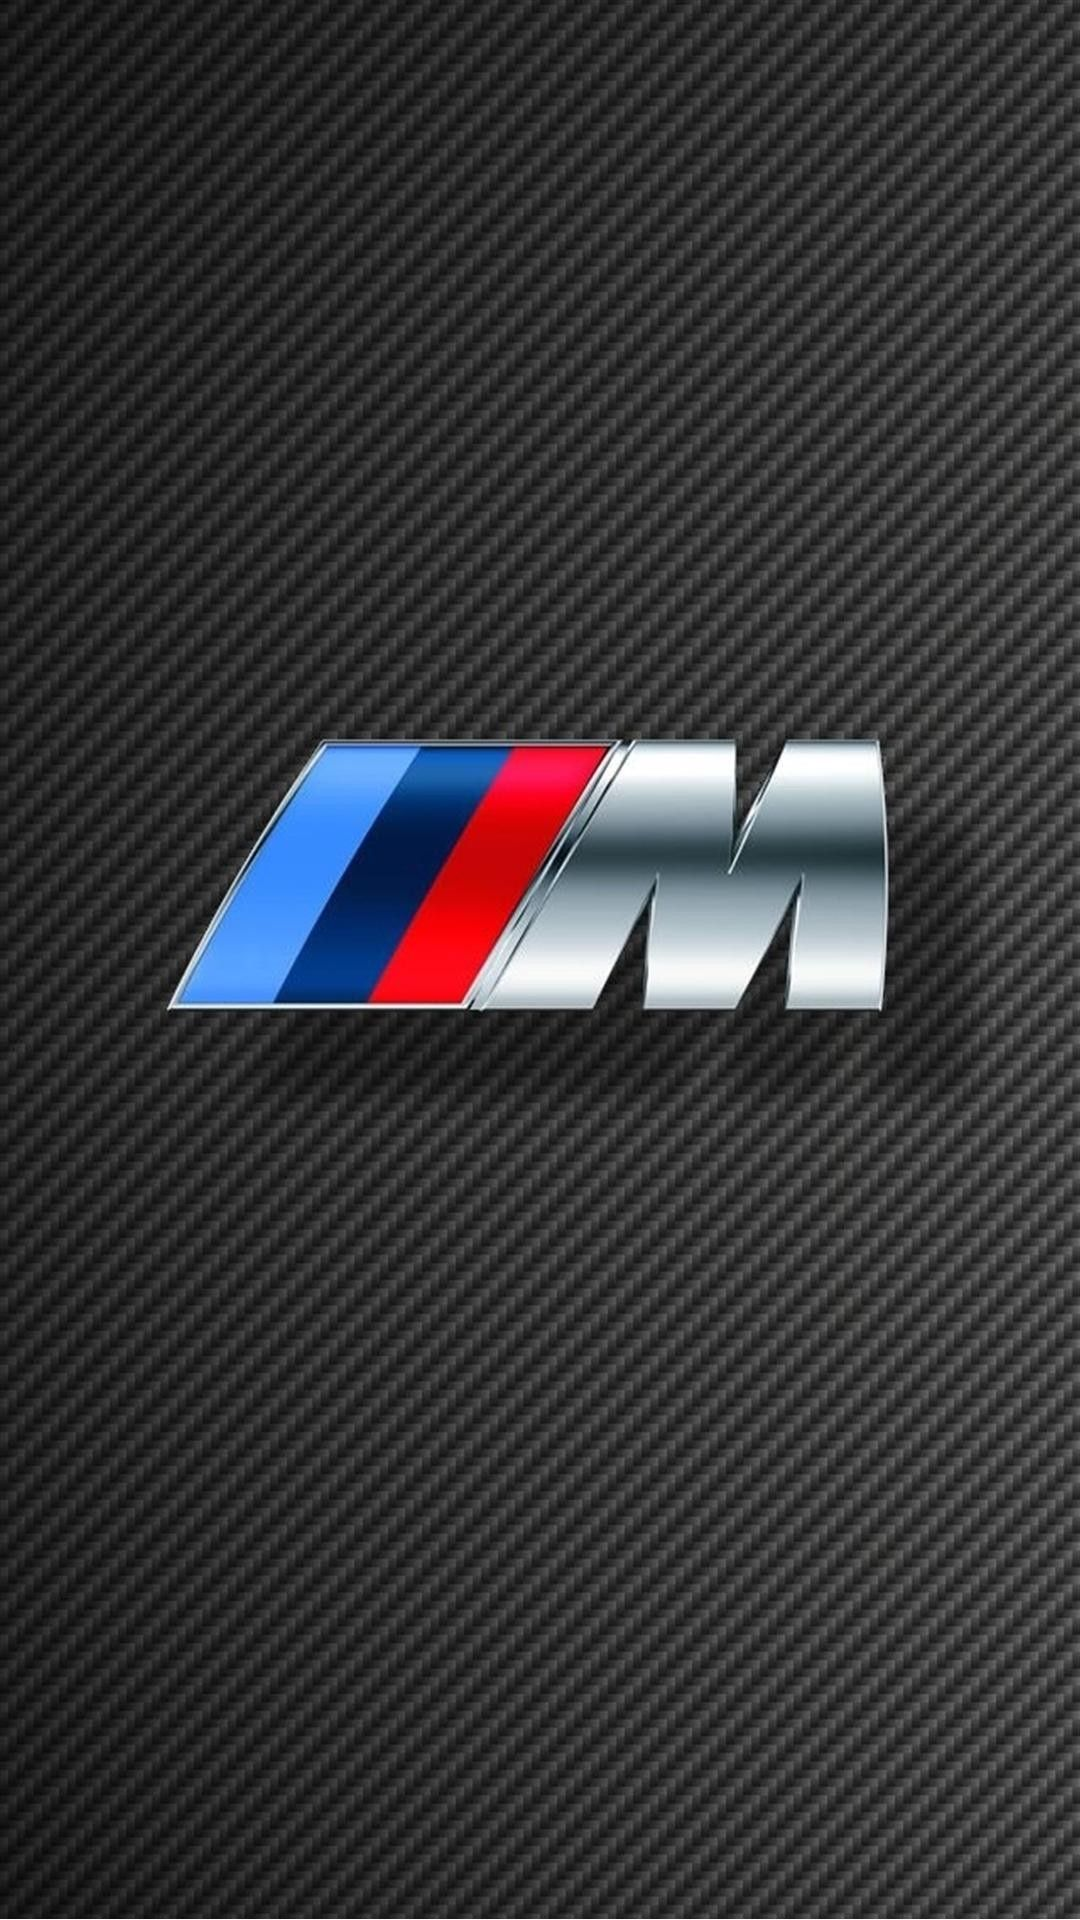 Bmw M Iphone Wallpapers Top Free Bmw M Iphone Backgrounds Wallpaperaccess Bmw Iphone Wallpaper Bmw Wallpapers Bmw Logo Hd Wallpaper